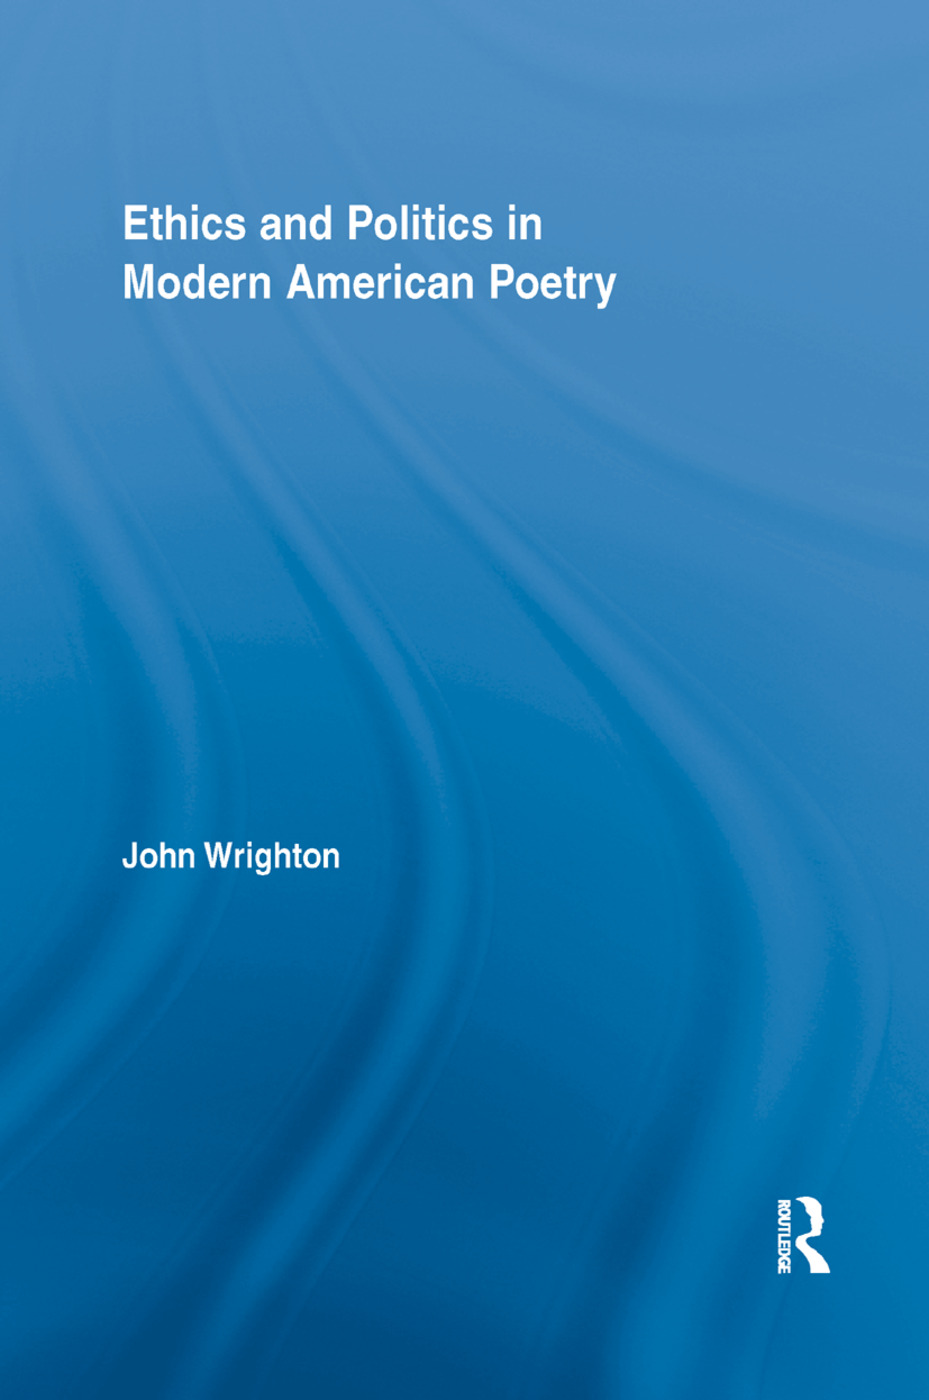 Ethics and Politics in Modern American Poetry